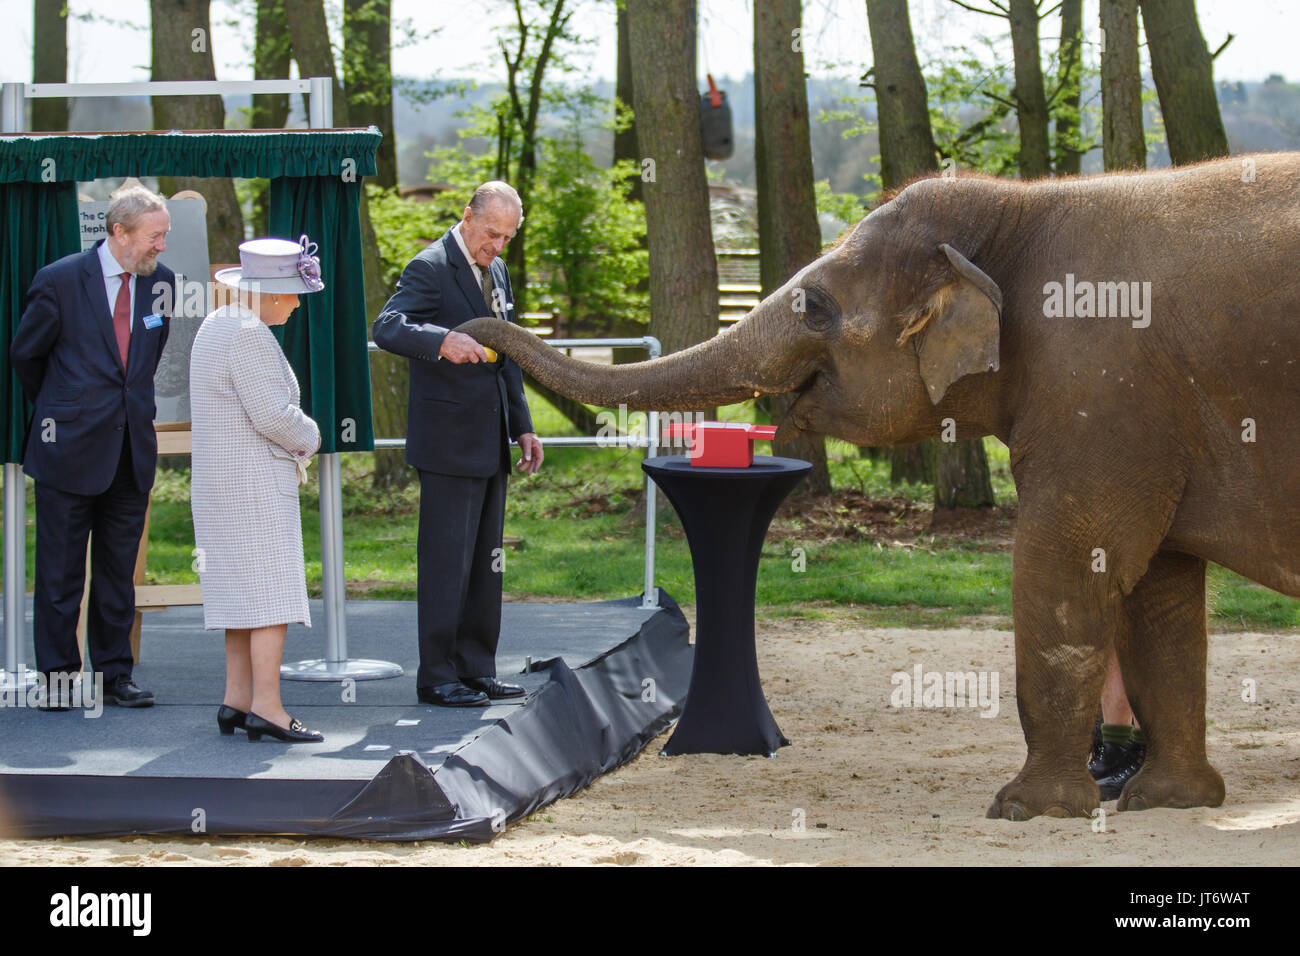 Her Majesty Queen Elizabeth II and HRH Prince Philip, feed Donna, an Asian Elephant bananas, ZSL Whipsnade Zoo - Stock Image